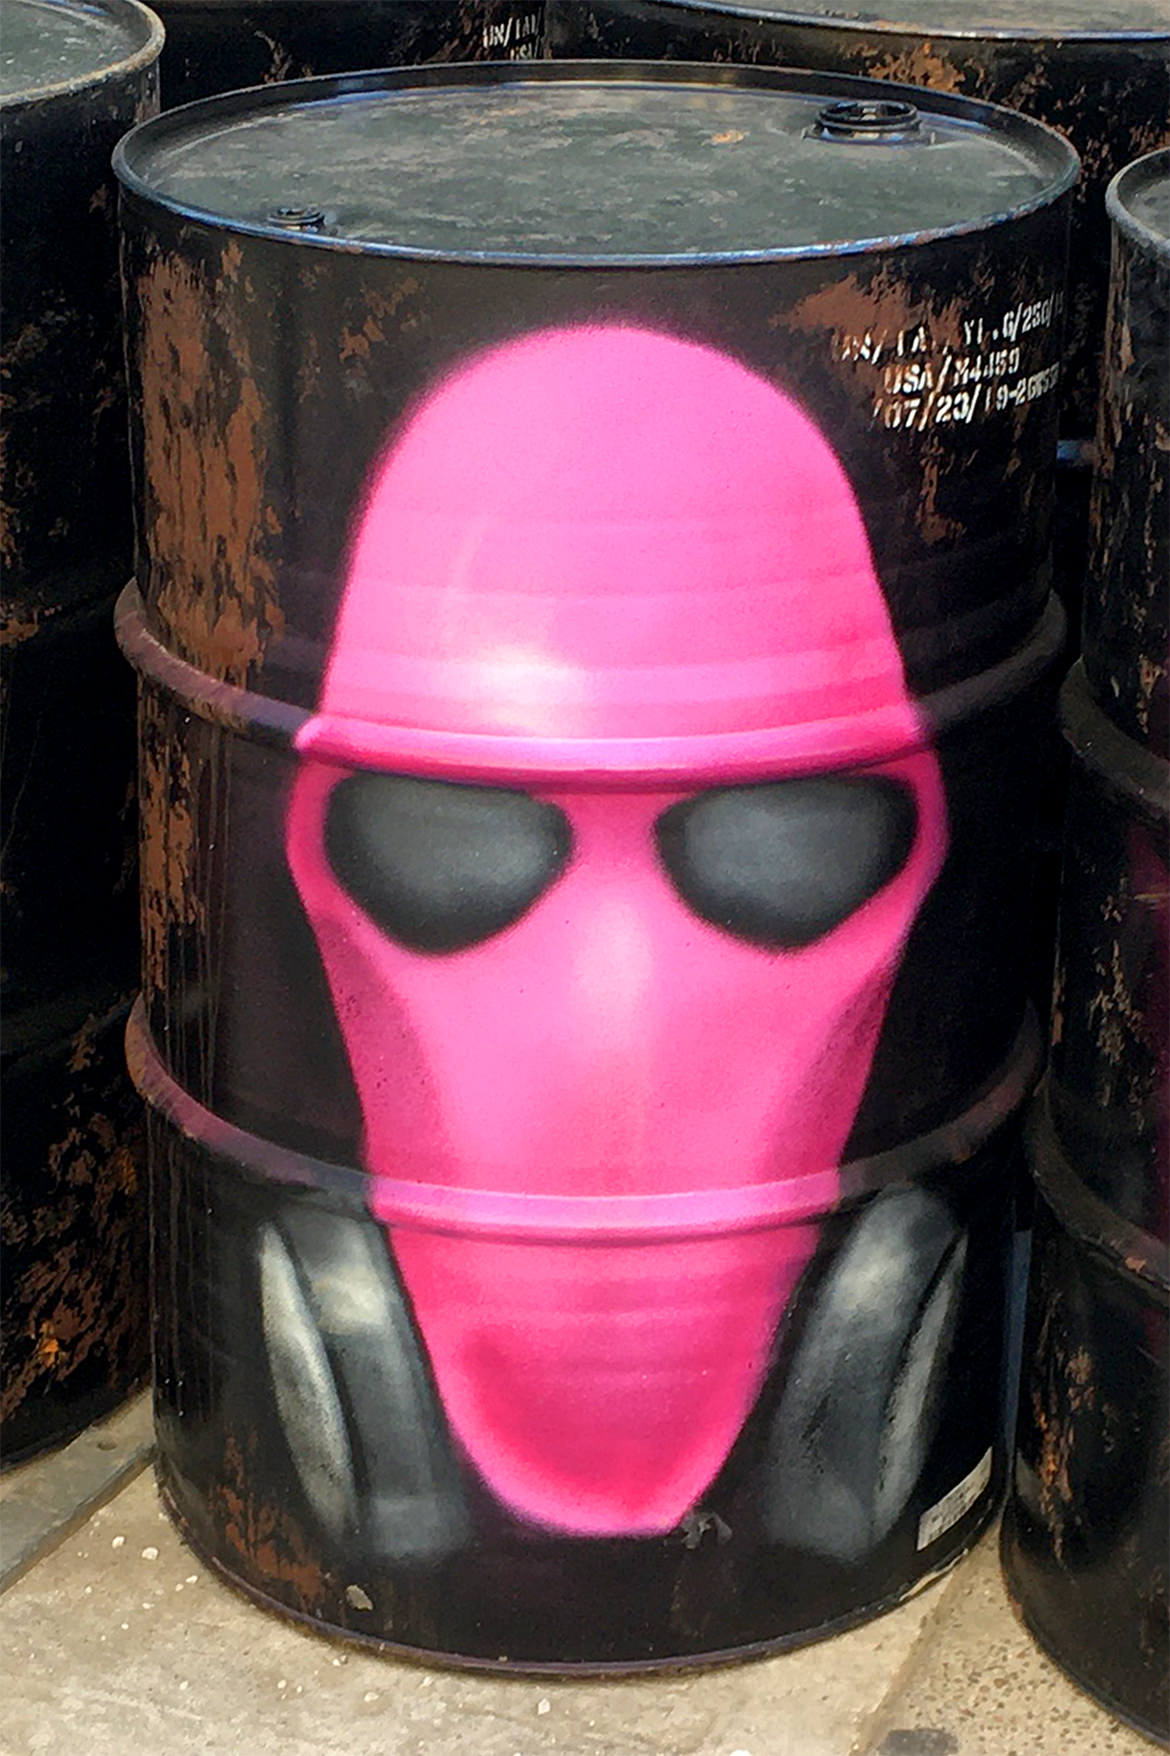 Spray paint graffiti art of a hot pink gas mask on an oil can